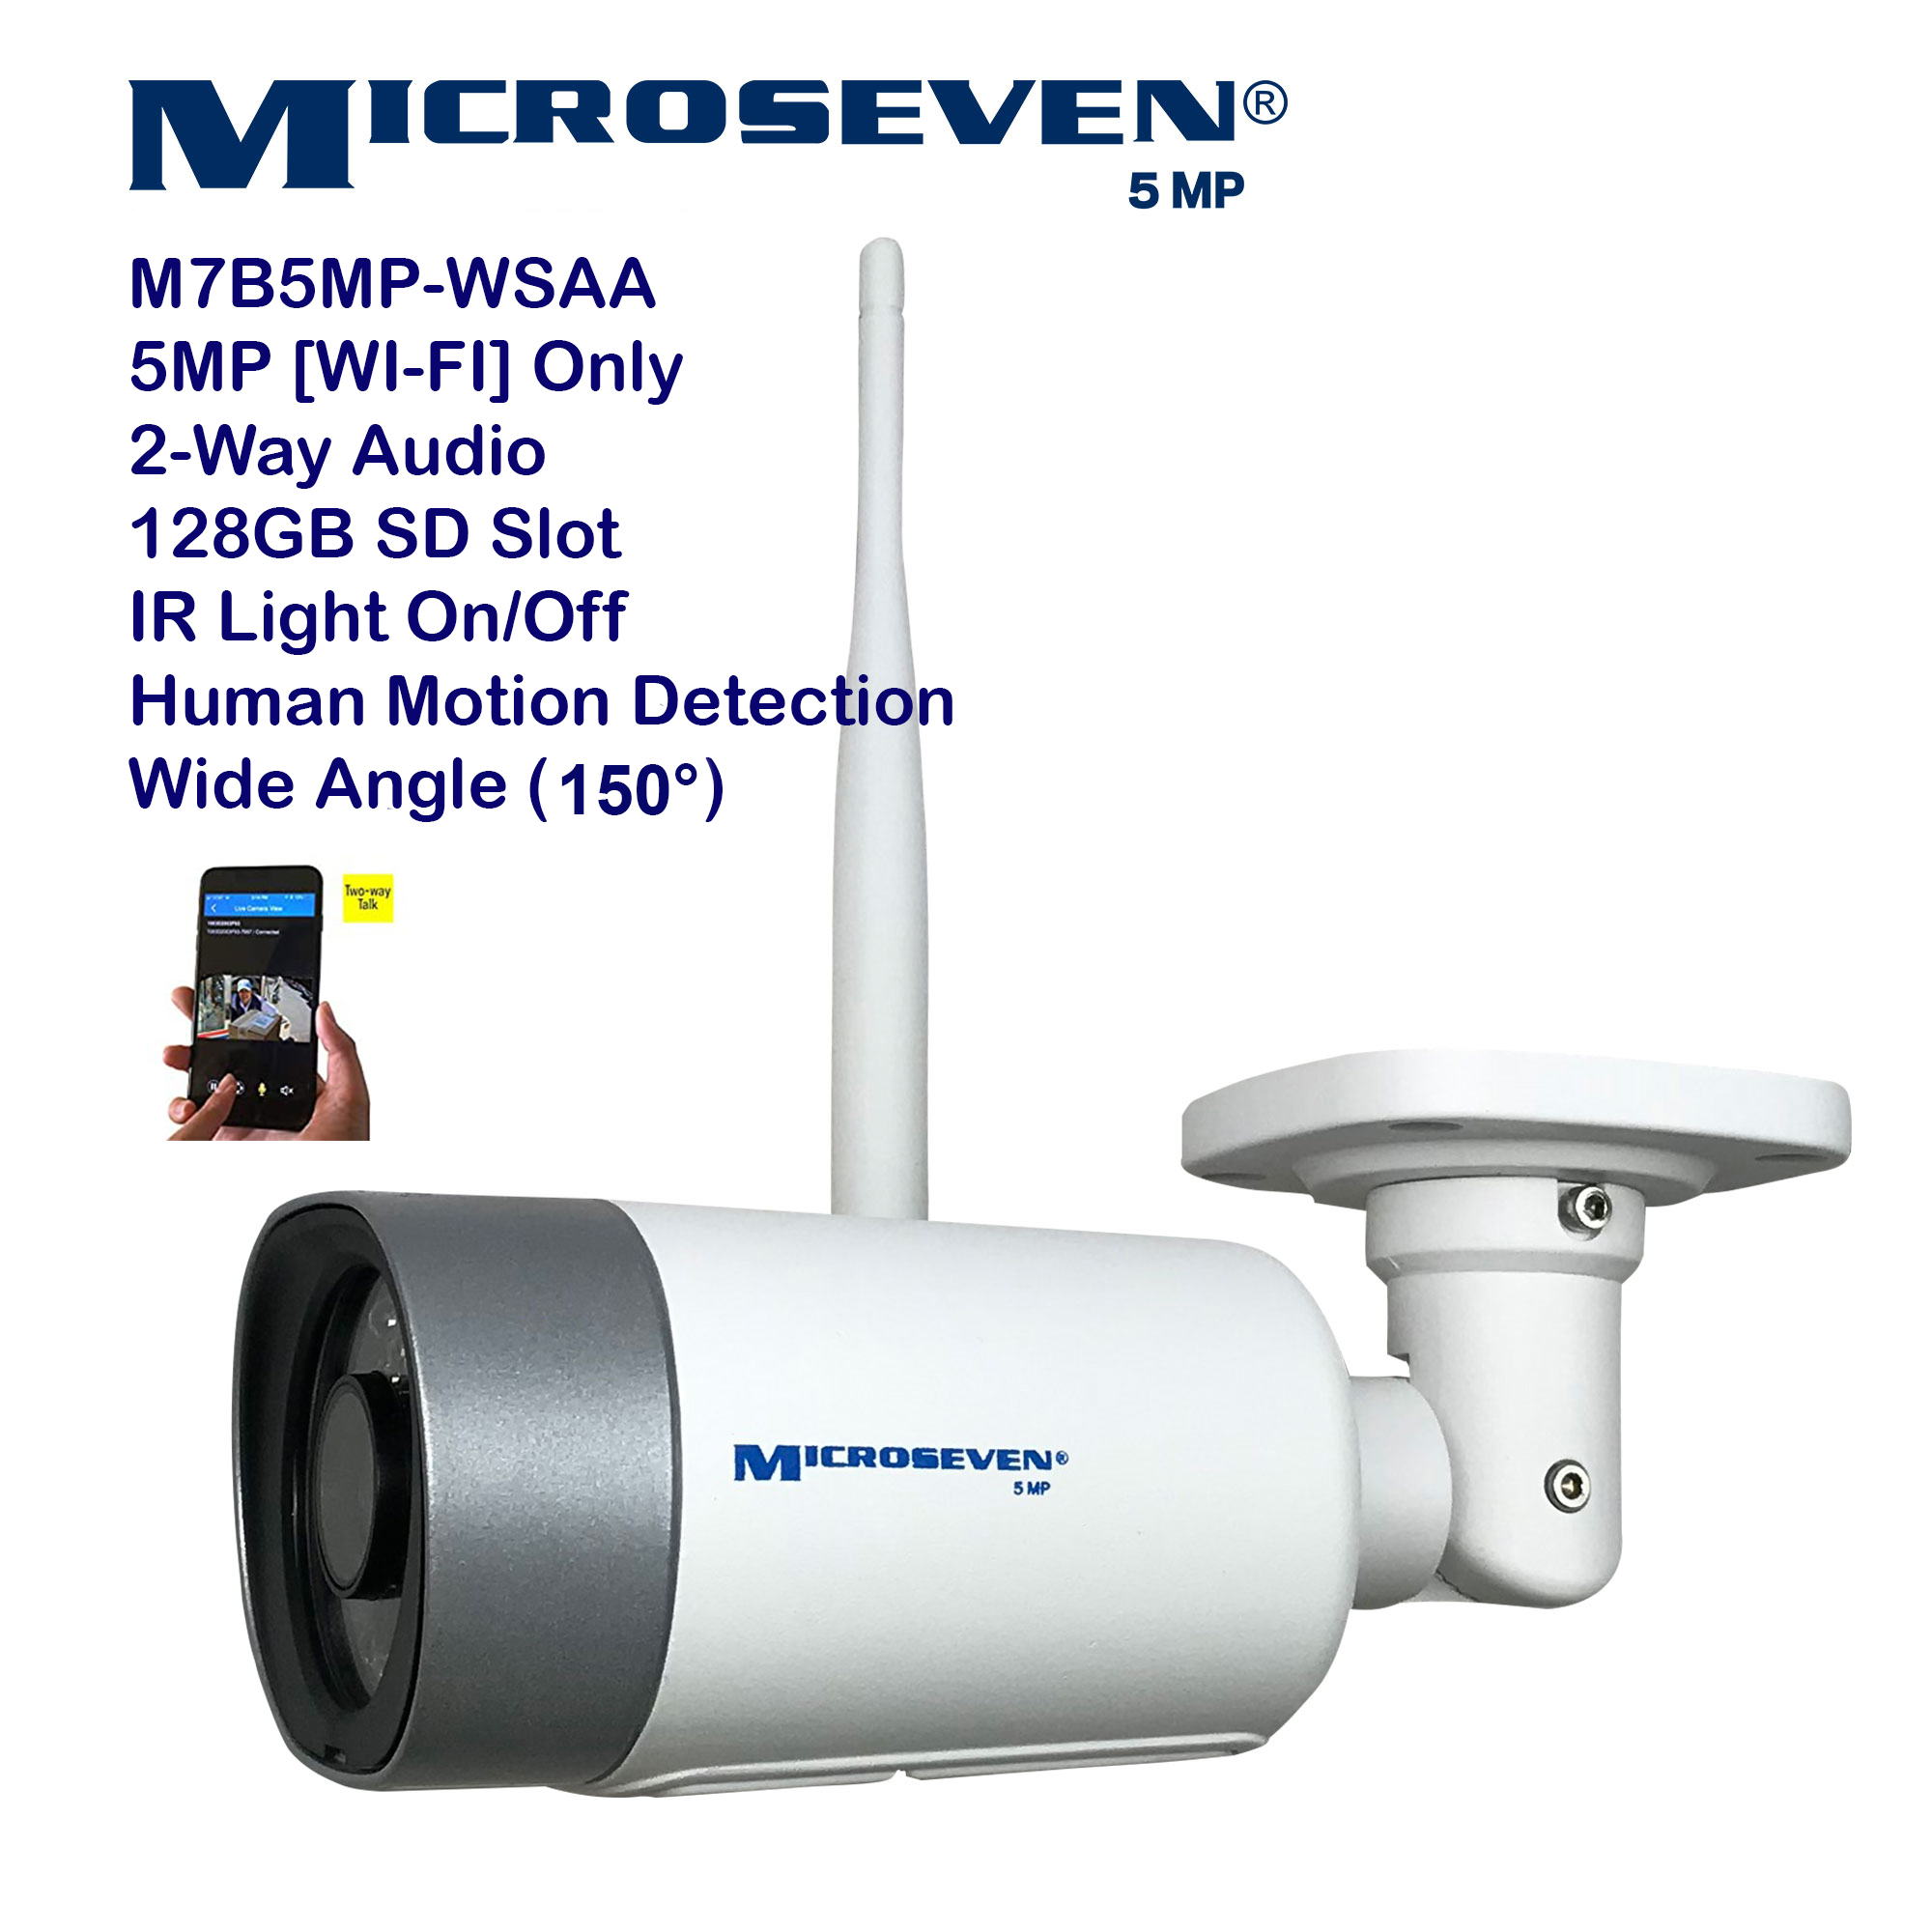 "3X Microseven (2020)Open Source 5MP (2560x1920) UltraHD [Wi-Fi] or Wired SONY 1/2.8"" Chipset CMOS 2.8mm 5MP Lens Wide Angle (150°) Two-Way Audio with Built-in Amplified Microphone and Speaker plug and Play ONVIF, IR Light (On/Off in the APP) Security Indoor / Outdoor IP Camera, A.I. Human Motion Detection, 128GB SD Slot, Day & Night, Web GUI & Apps, VMS (Video Management System) Free 24hr M7 Cloud Storage, Works with Alexa with No Monthly Fee+ Broadcasting on YouTube, Facebook & Microseven.tv"